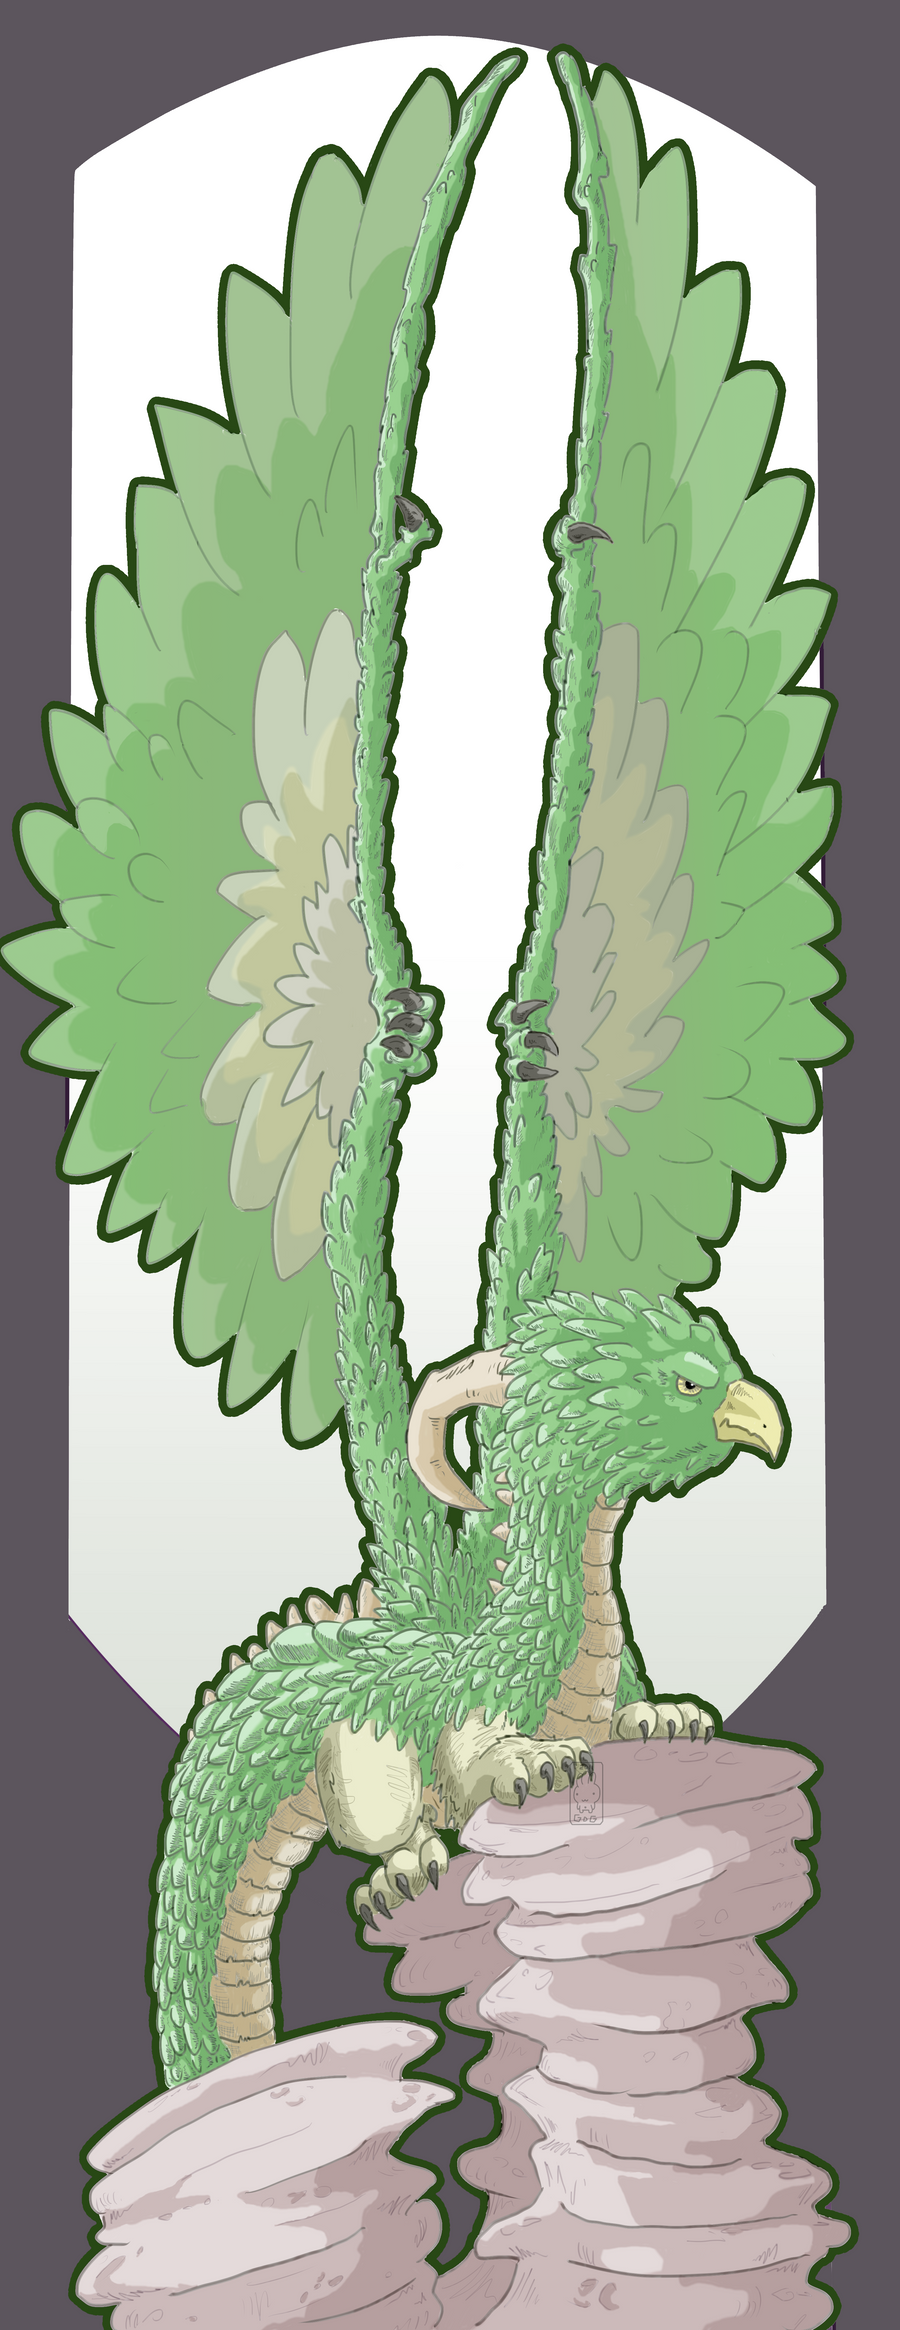 greendragongryphon's Profile Picture